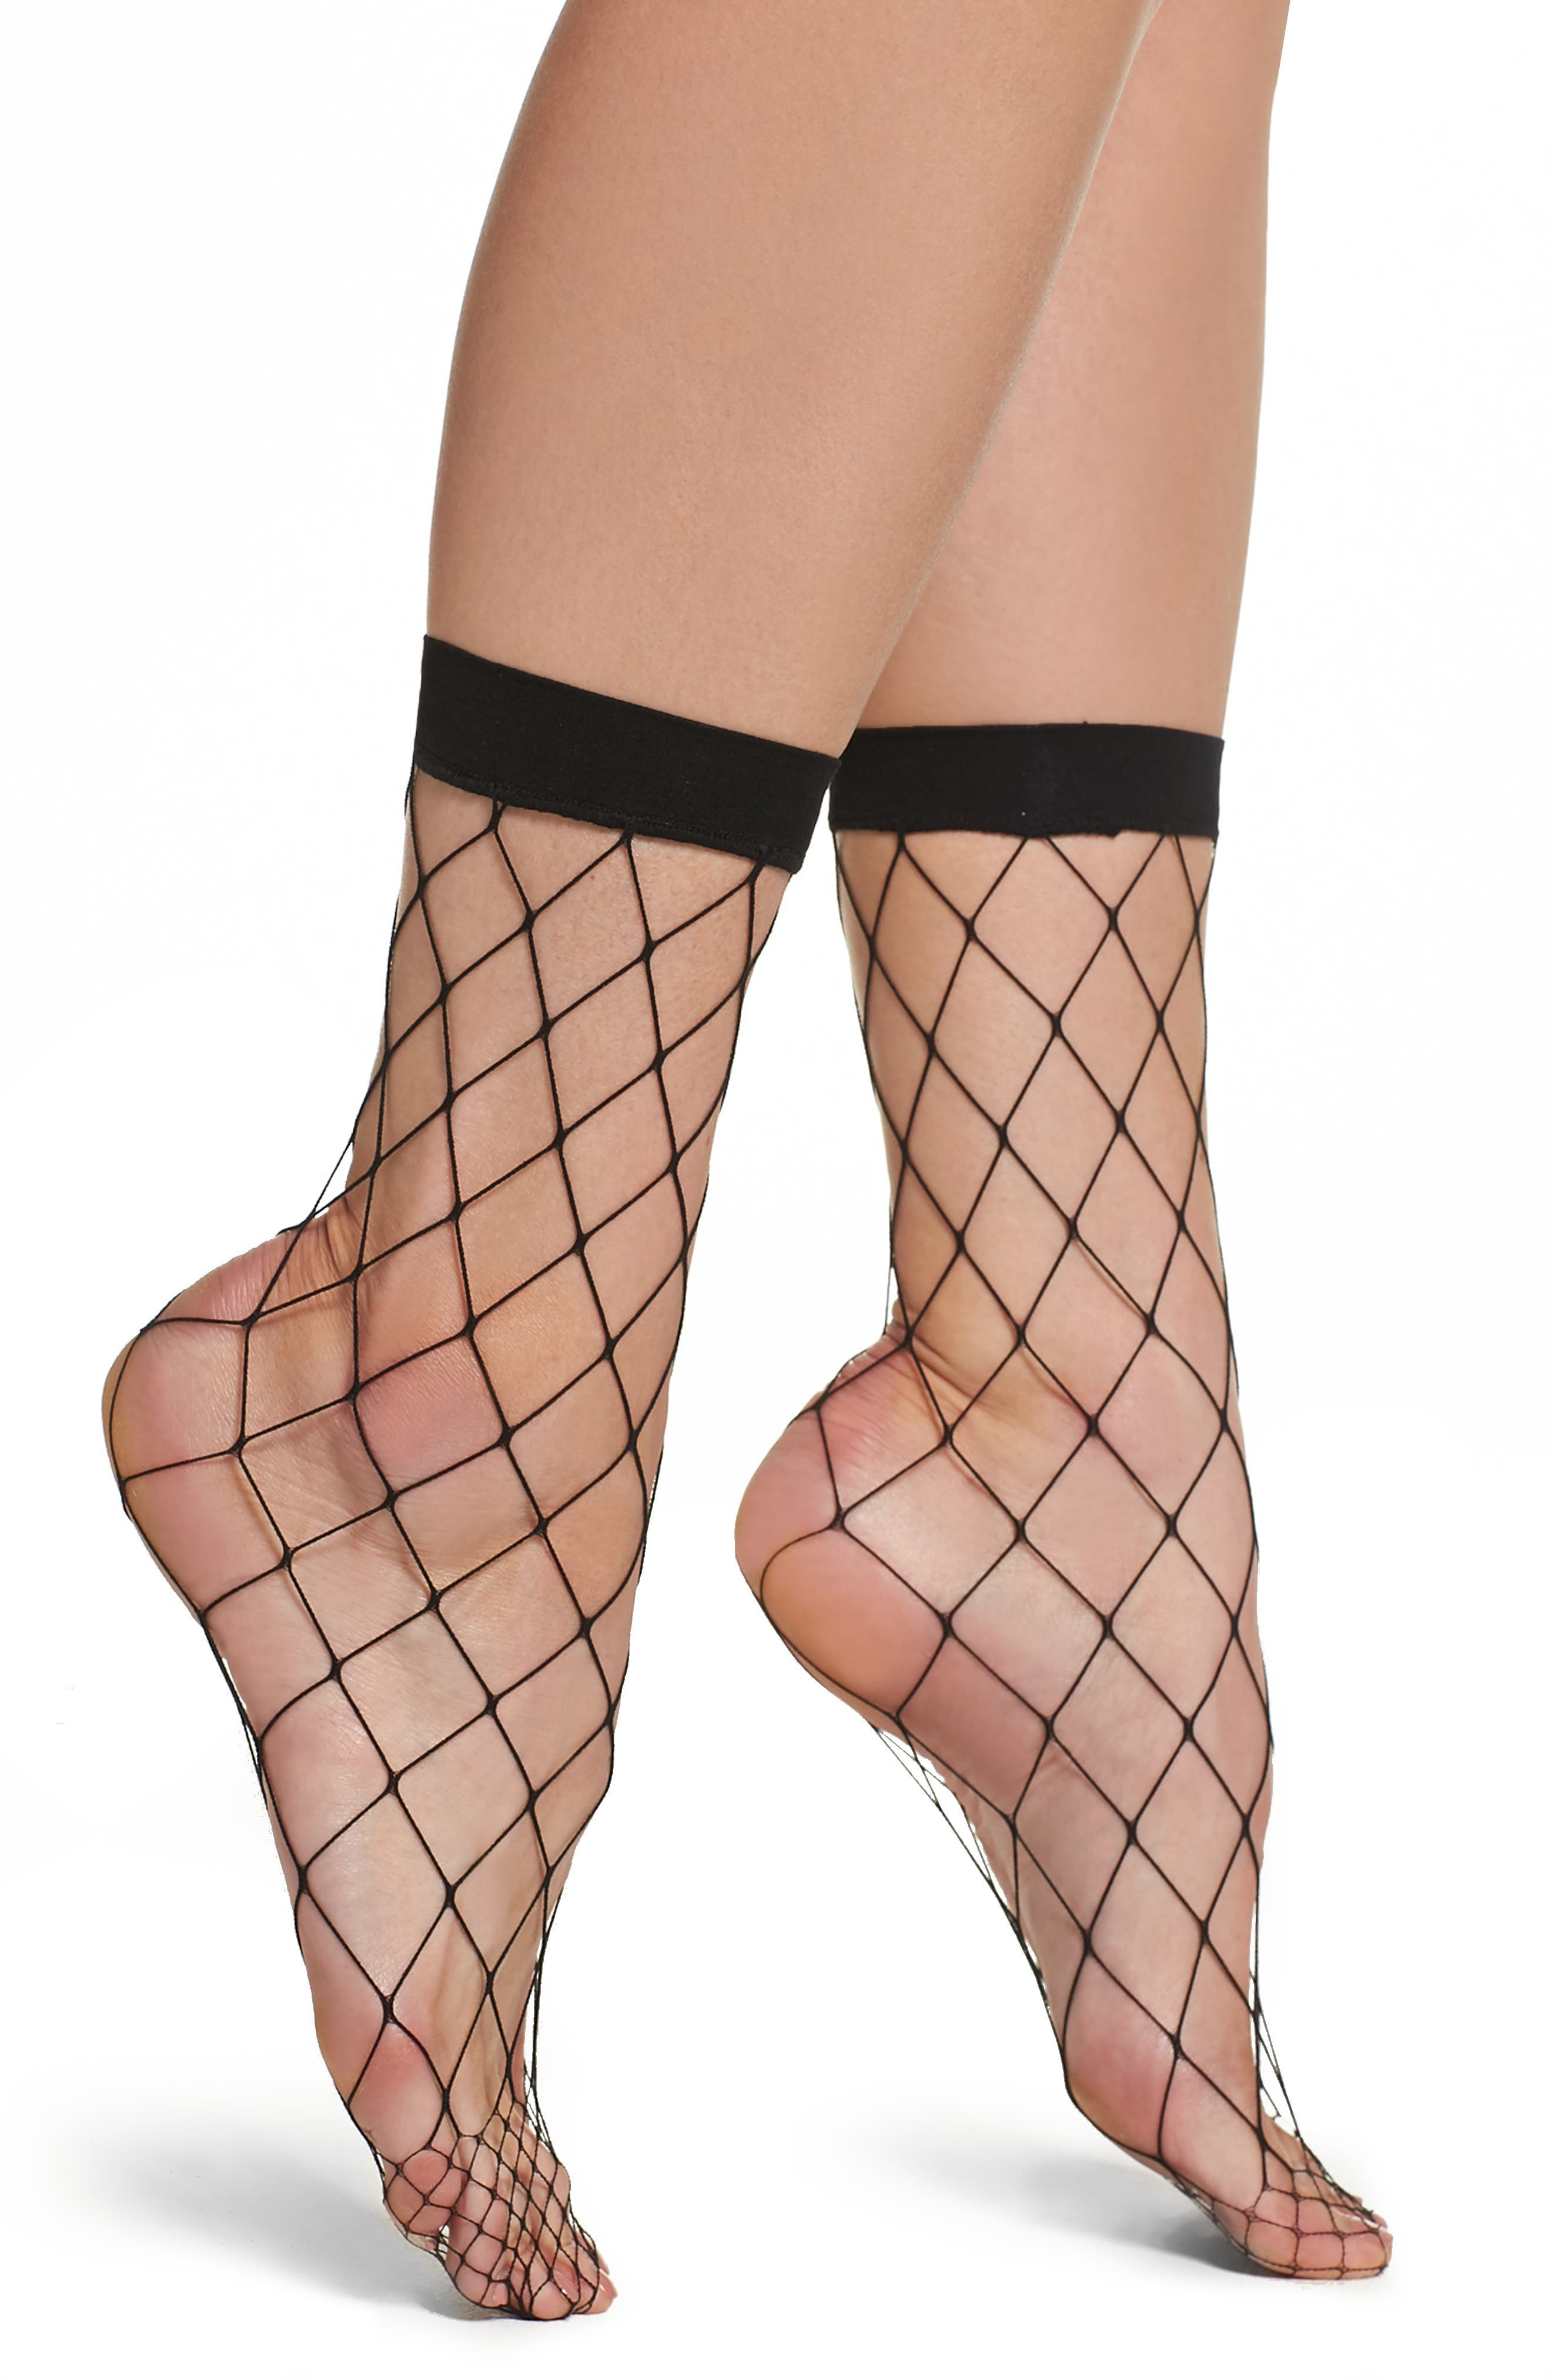 Nordstrom Fishnet Ankle Socks